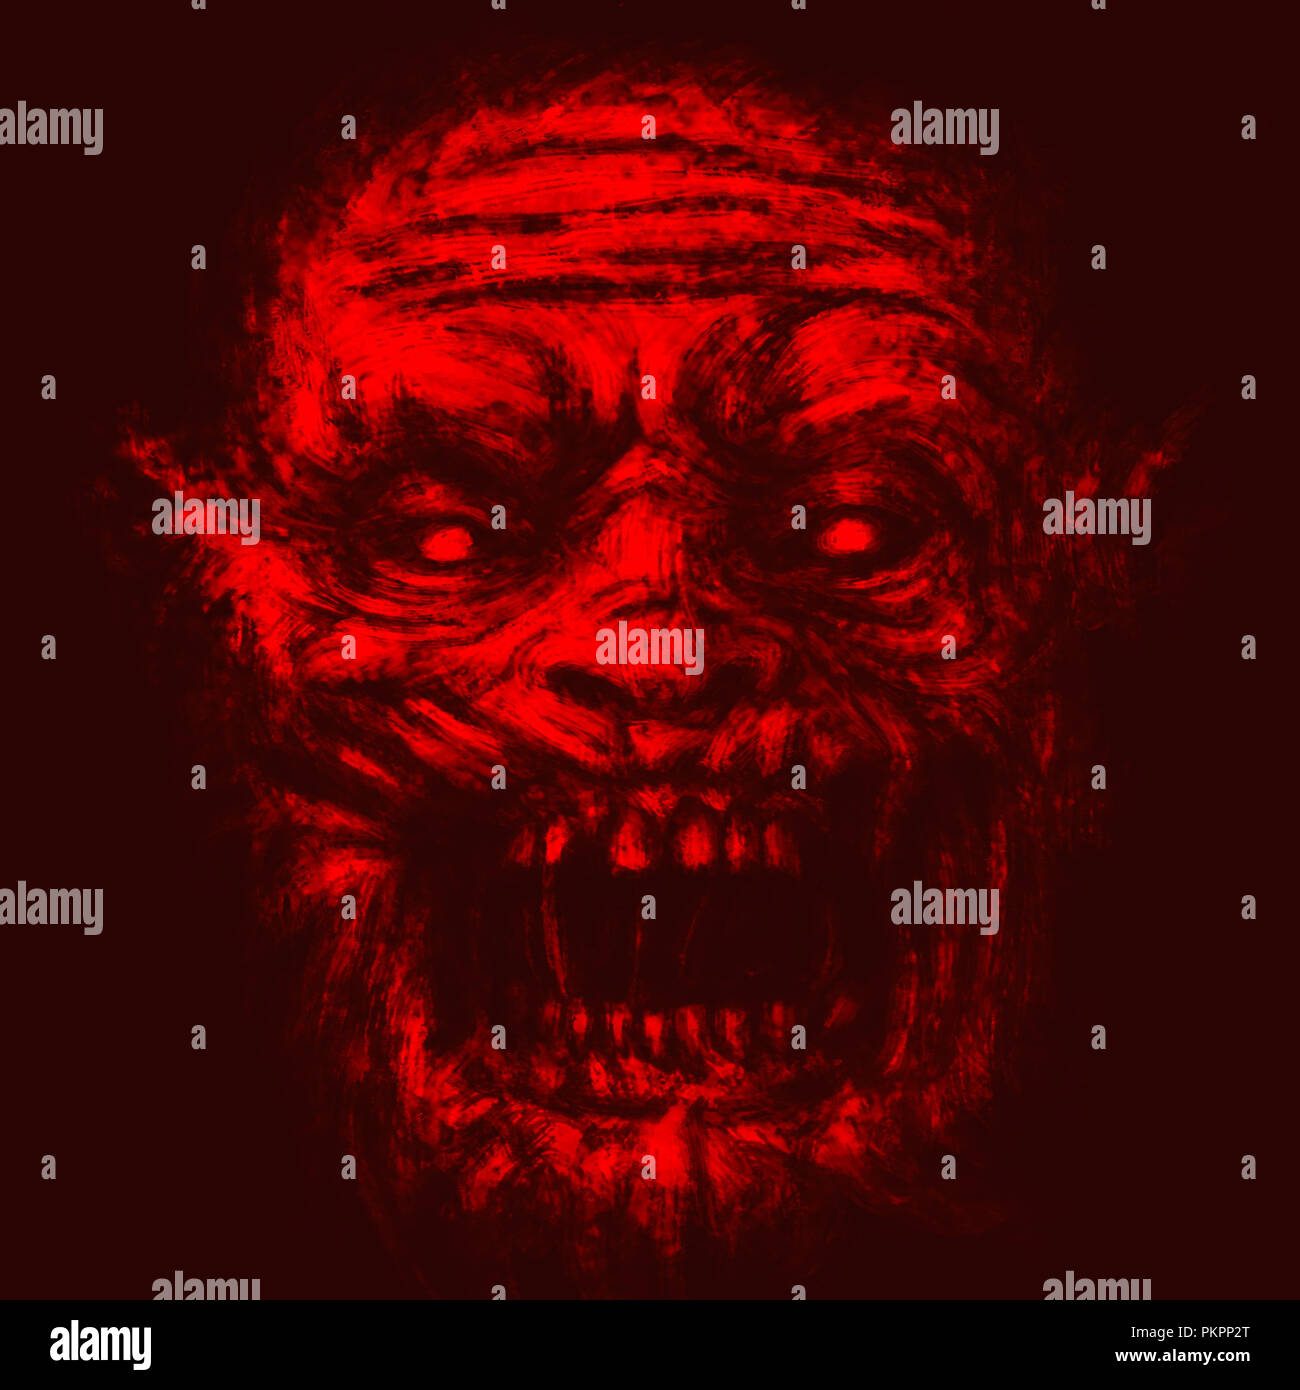 Scary Zombie Face Illustration In Horror Genre Red Background